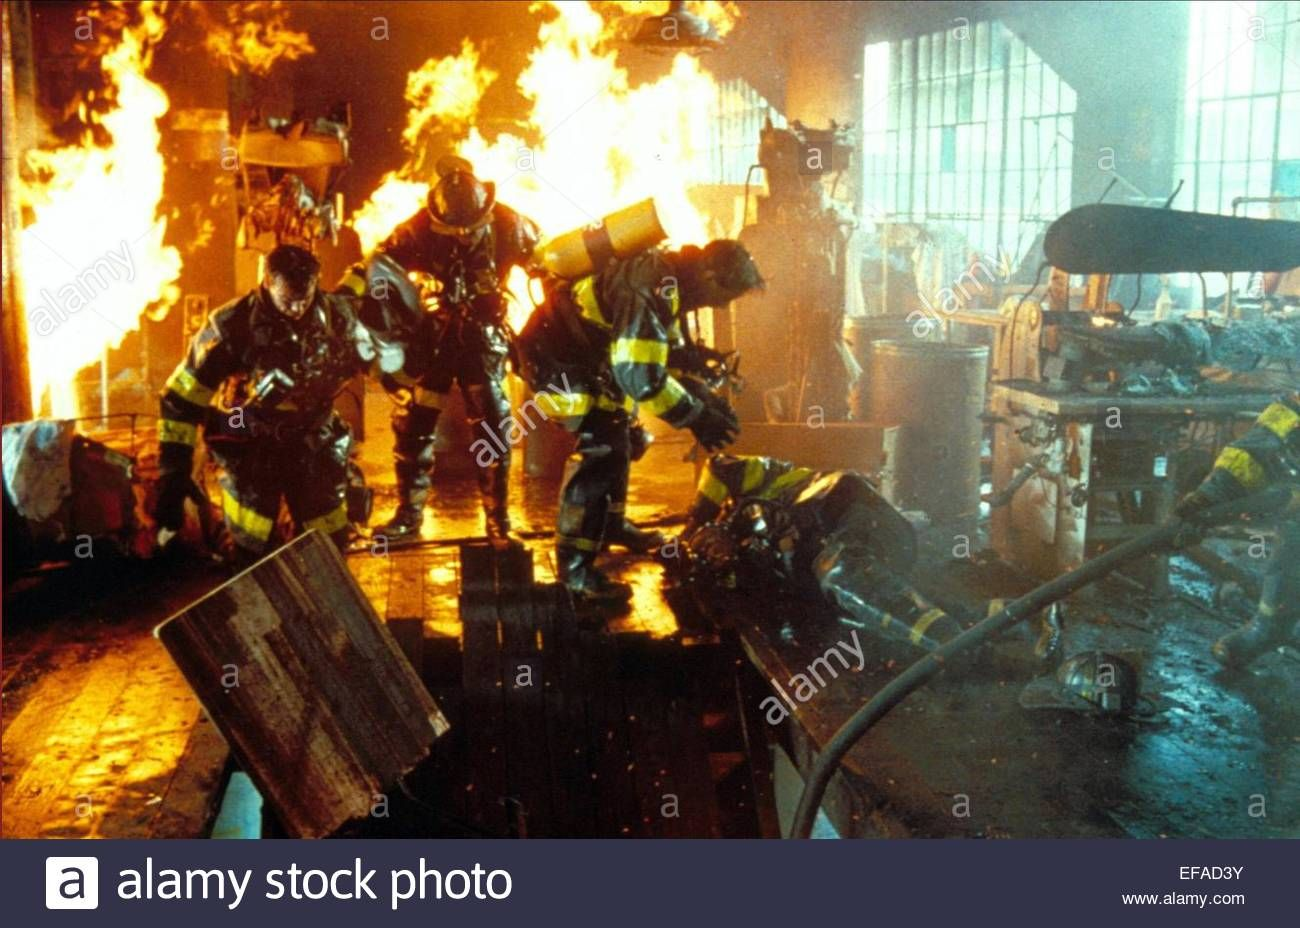 Download this stock image: FIRE SCENE BACKDRAFT (1991) - EFAD3Y from Alamy's library of millions of high resolution stock photos, illustrations and vectors.